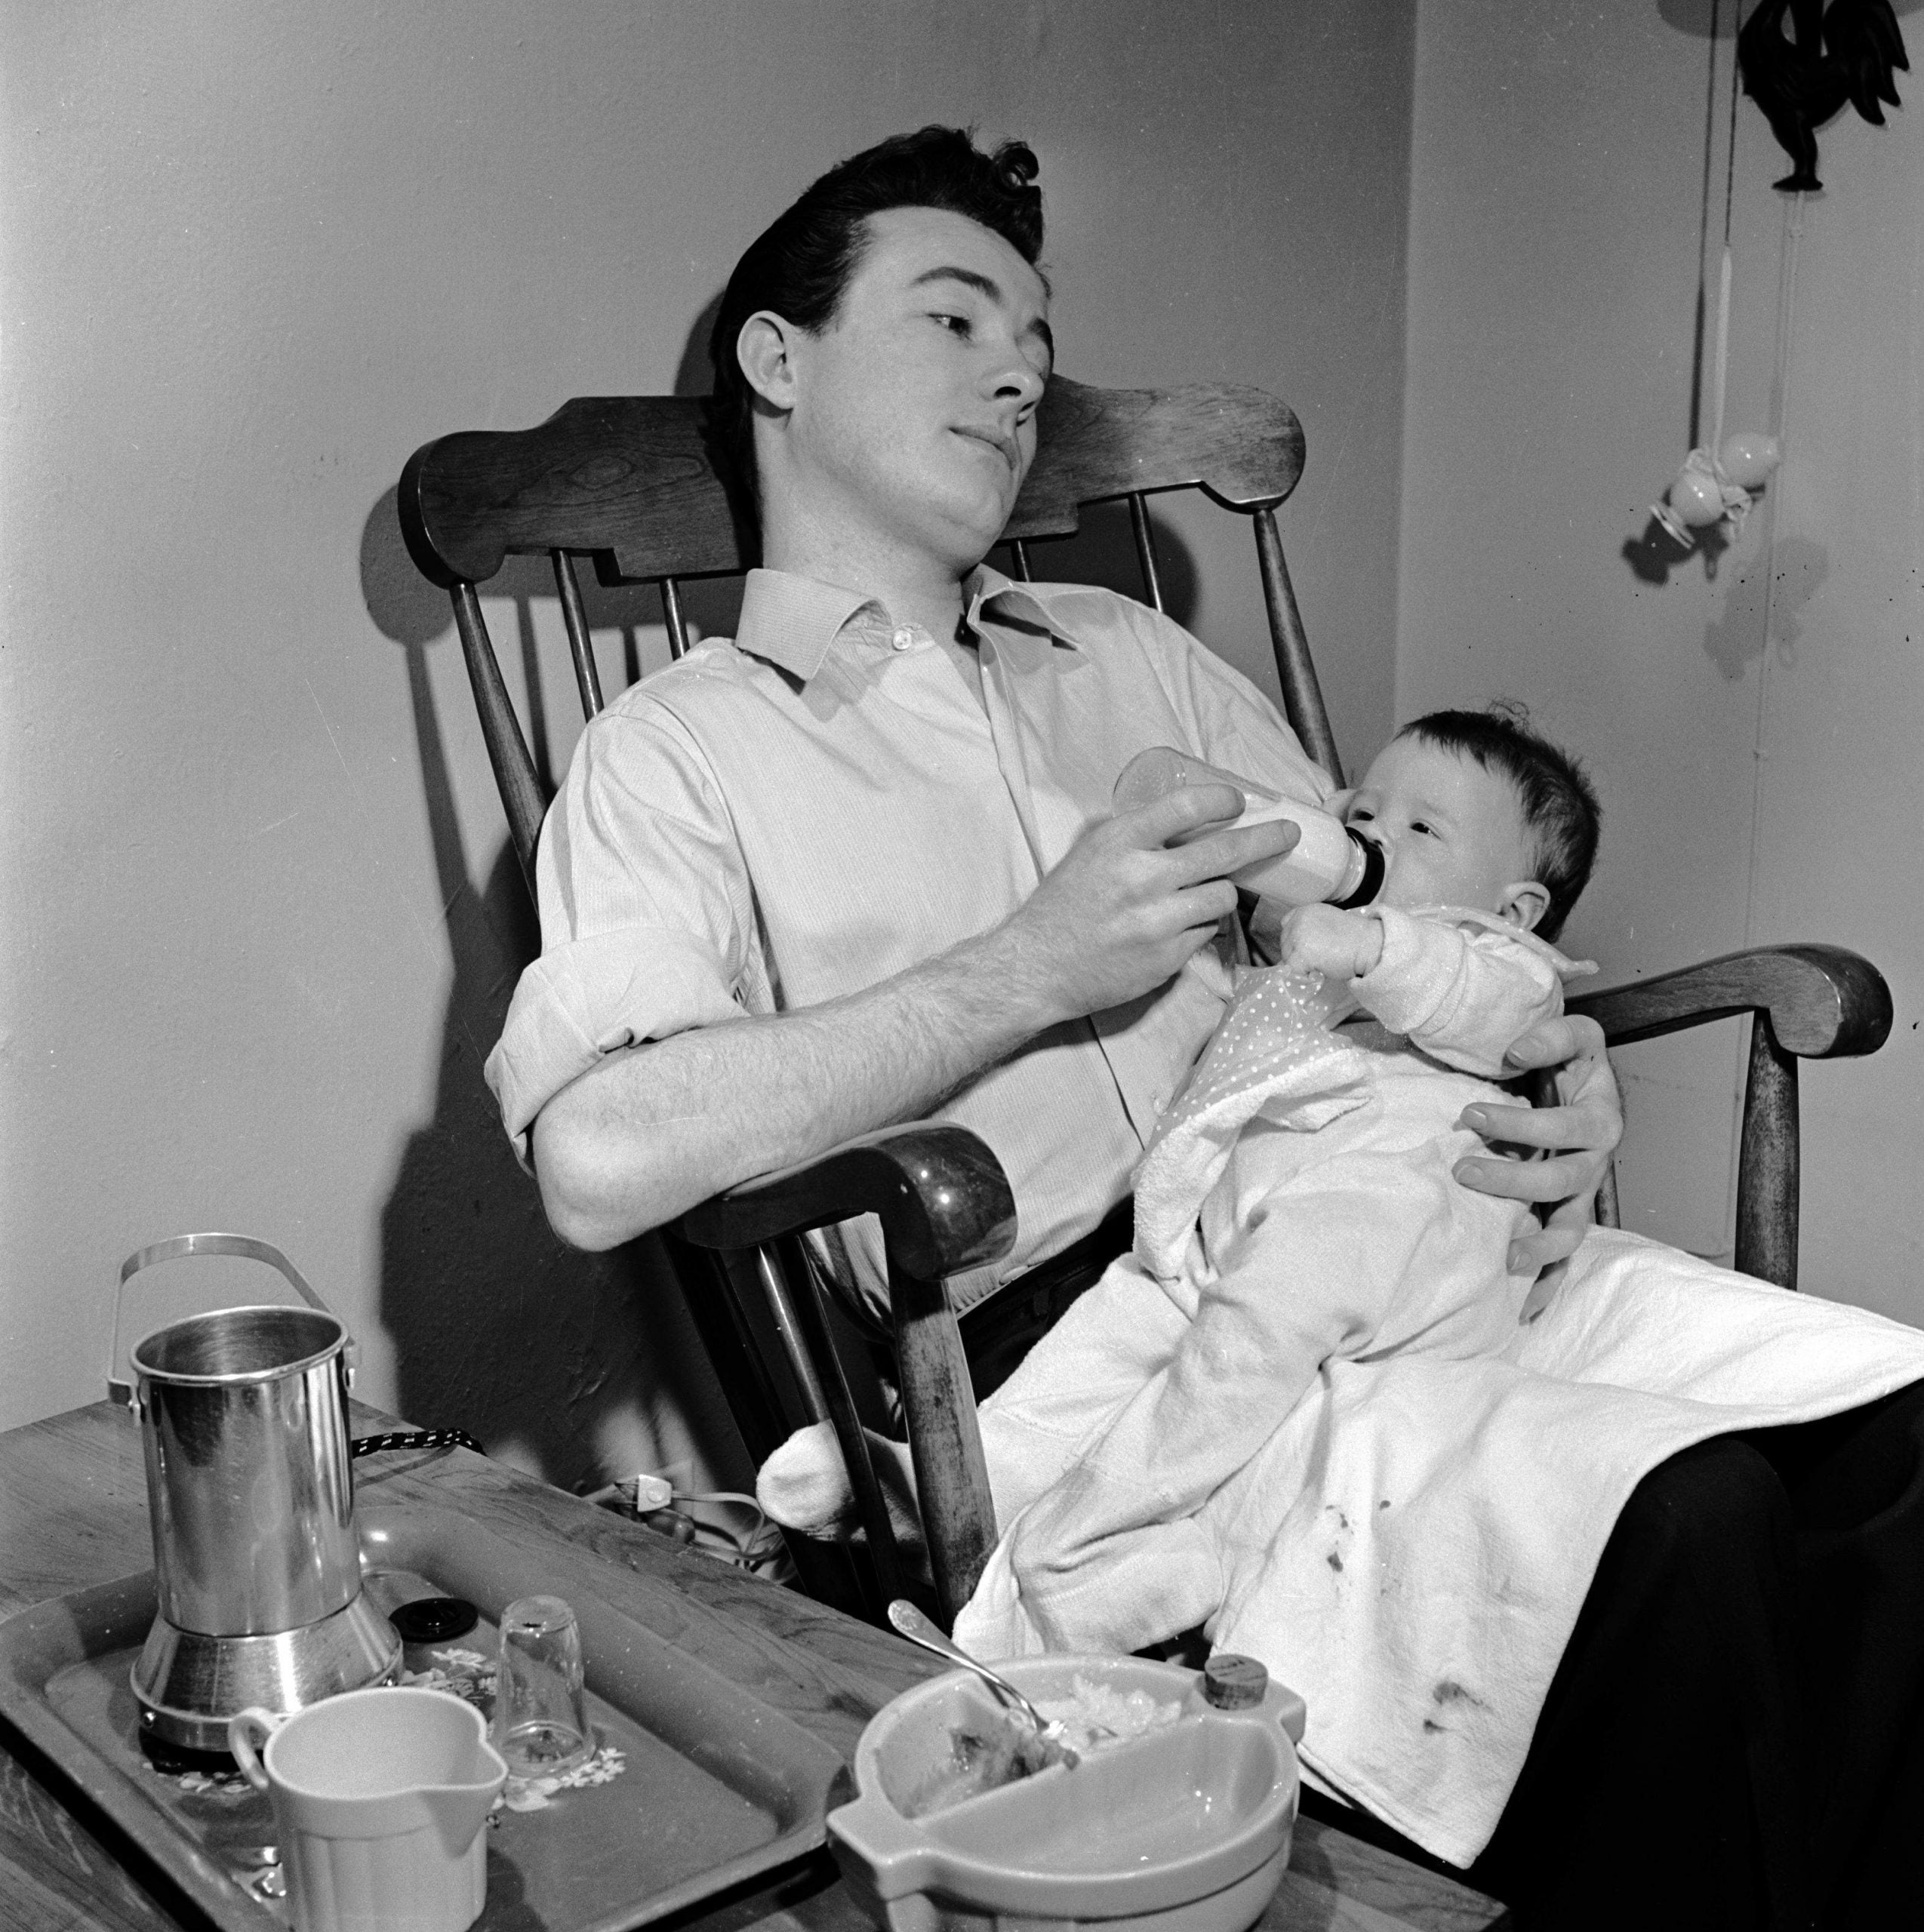 It's time for more men to try shared parental leave